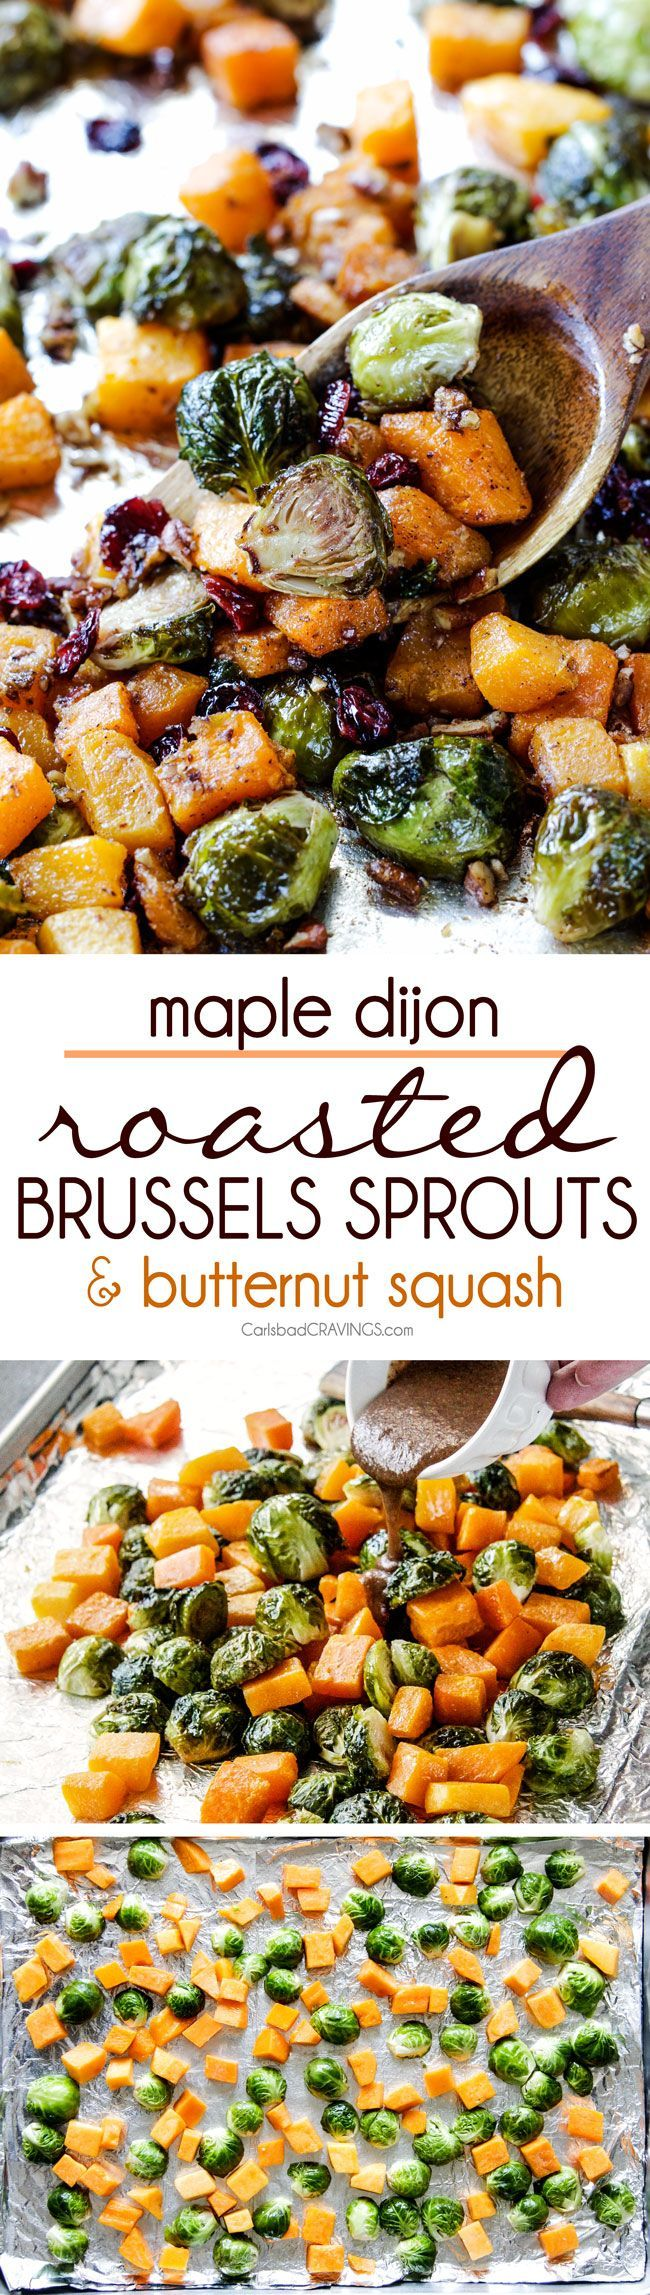 Easy Maple Dijon Roasted Brussels Sprouts and Butternut Squash tossed with cranberries and bacon for the BEST combo ever! tangy, salty, sweet, crunchy, crispy! perfect for Thanksgiving and Christmas, easy enough for everyday!